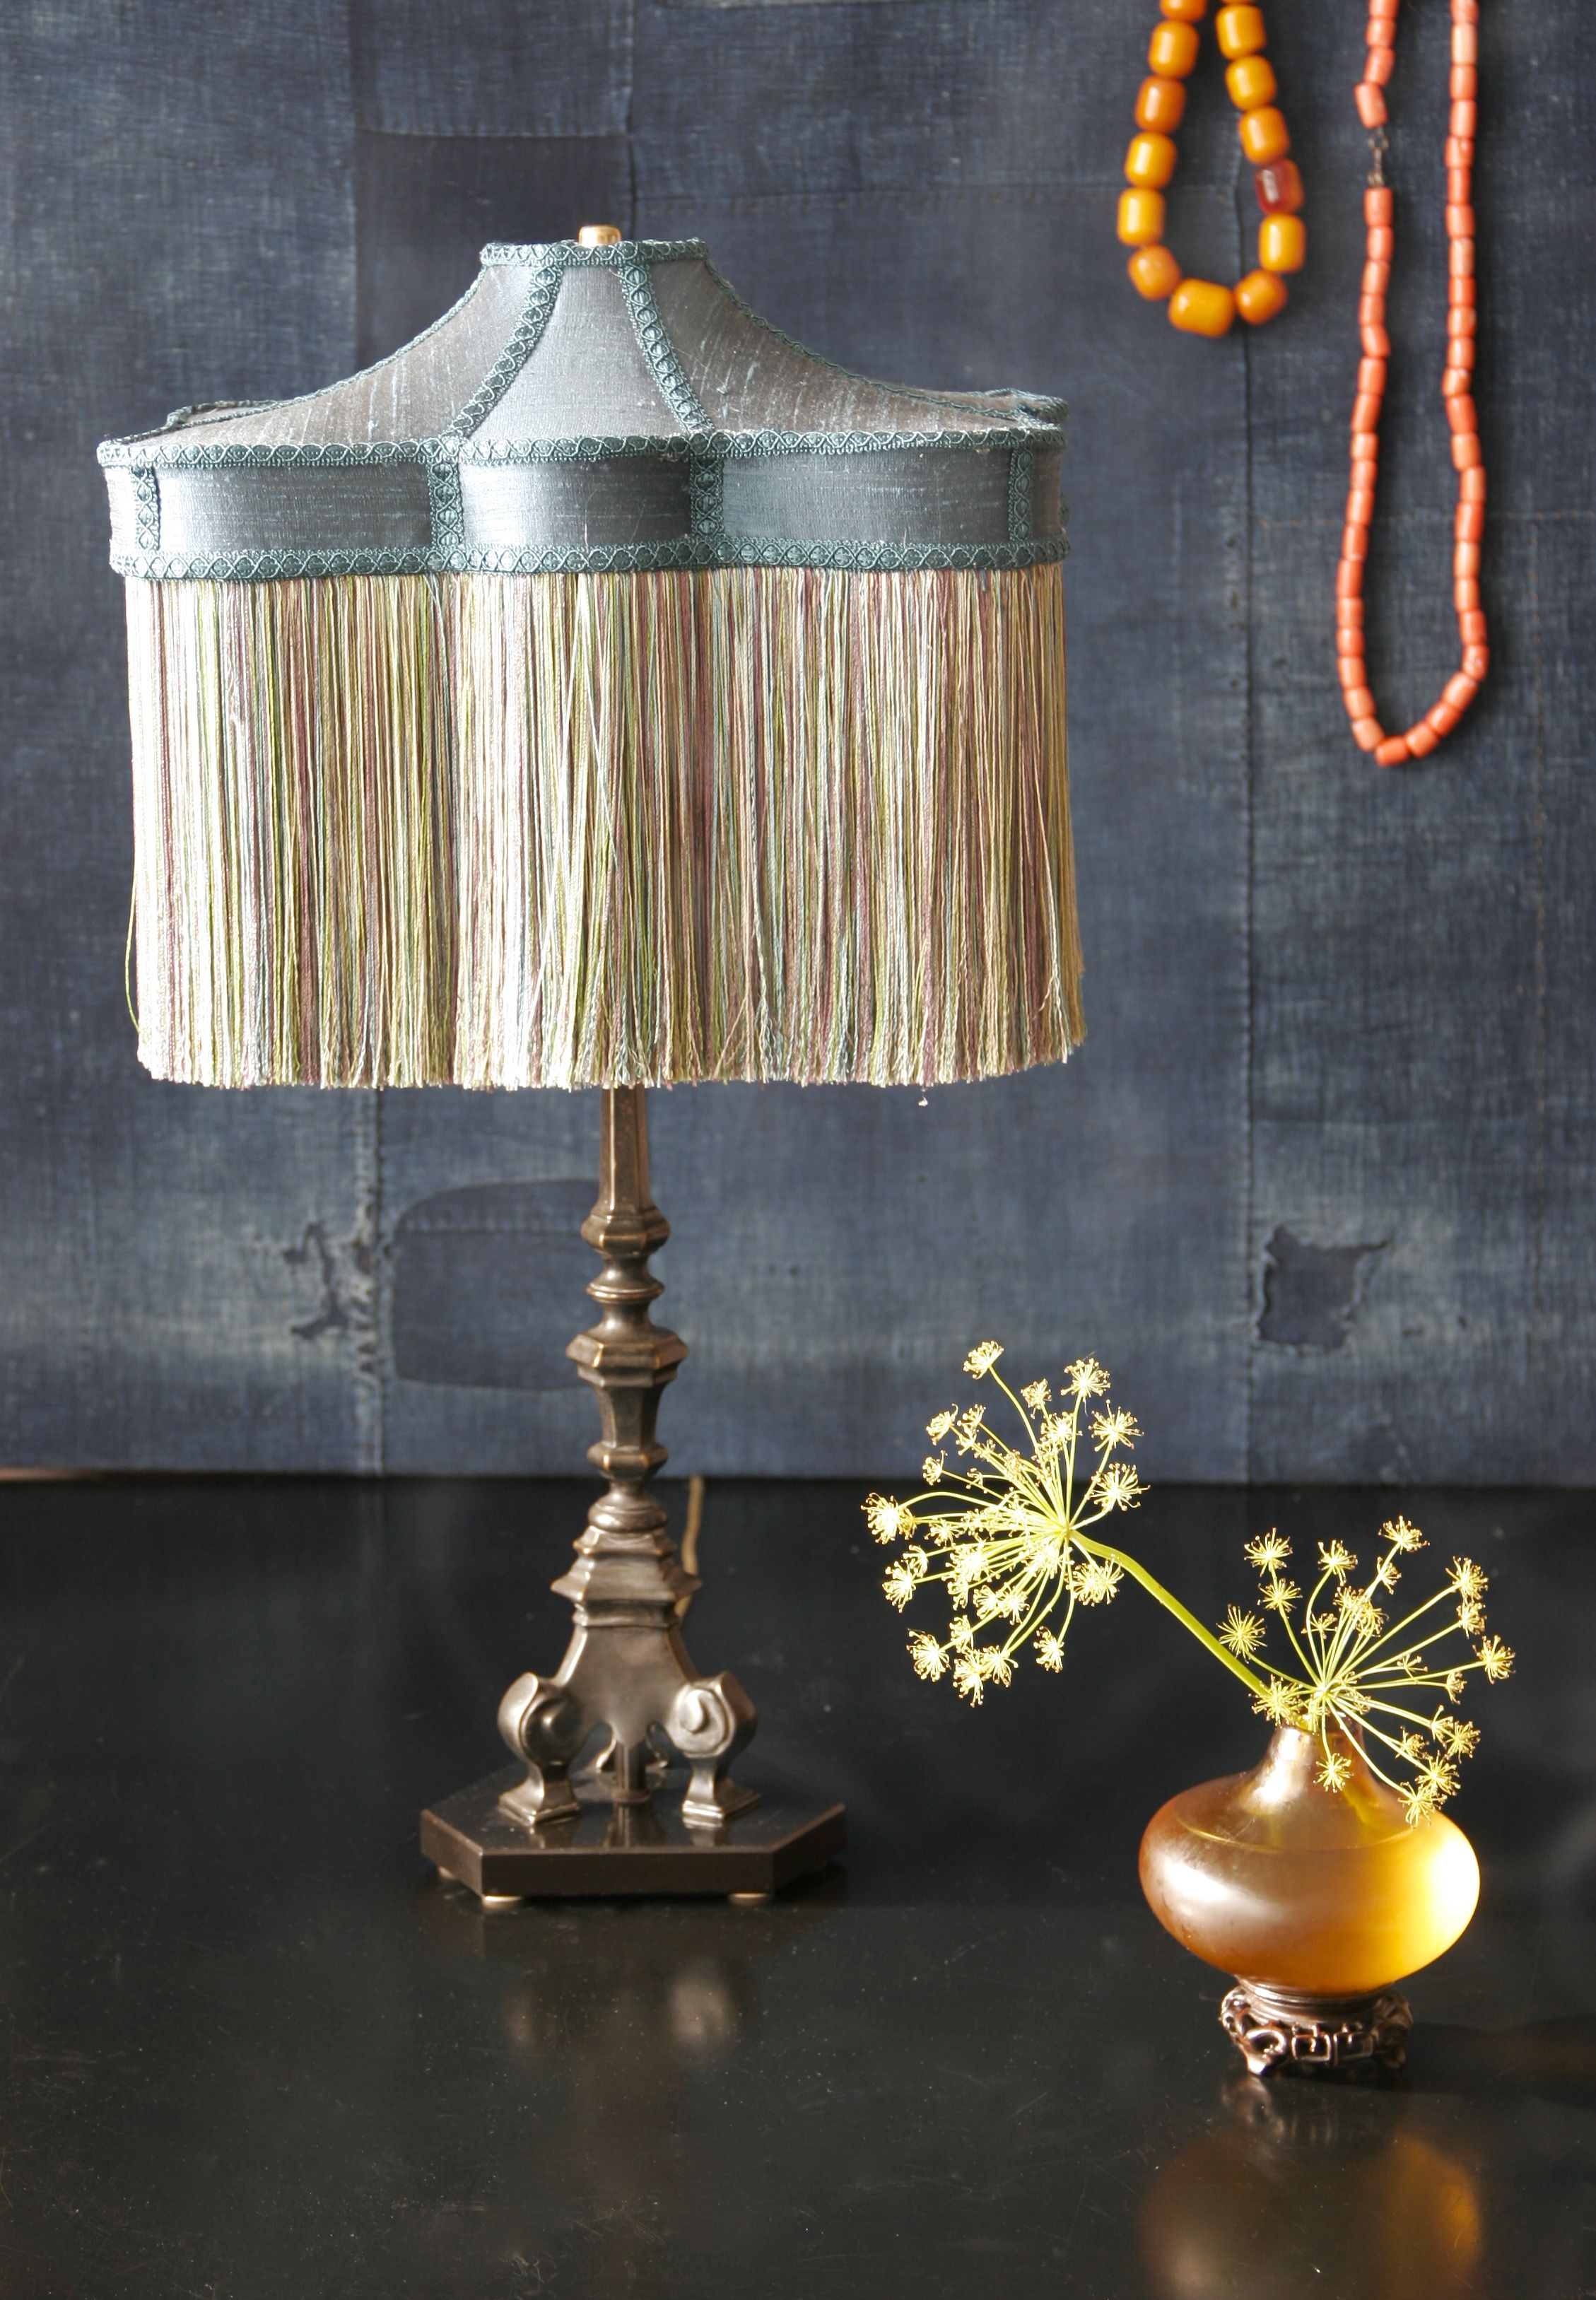 fashion in daily club lamp waterford polished is loading buffet inch image lampshades lamps shades hospitality